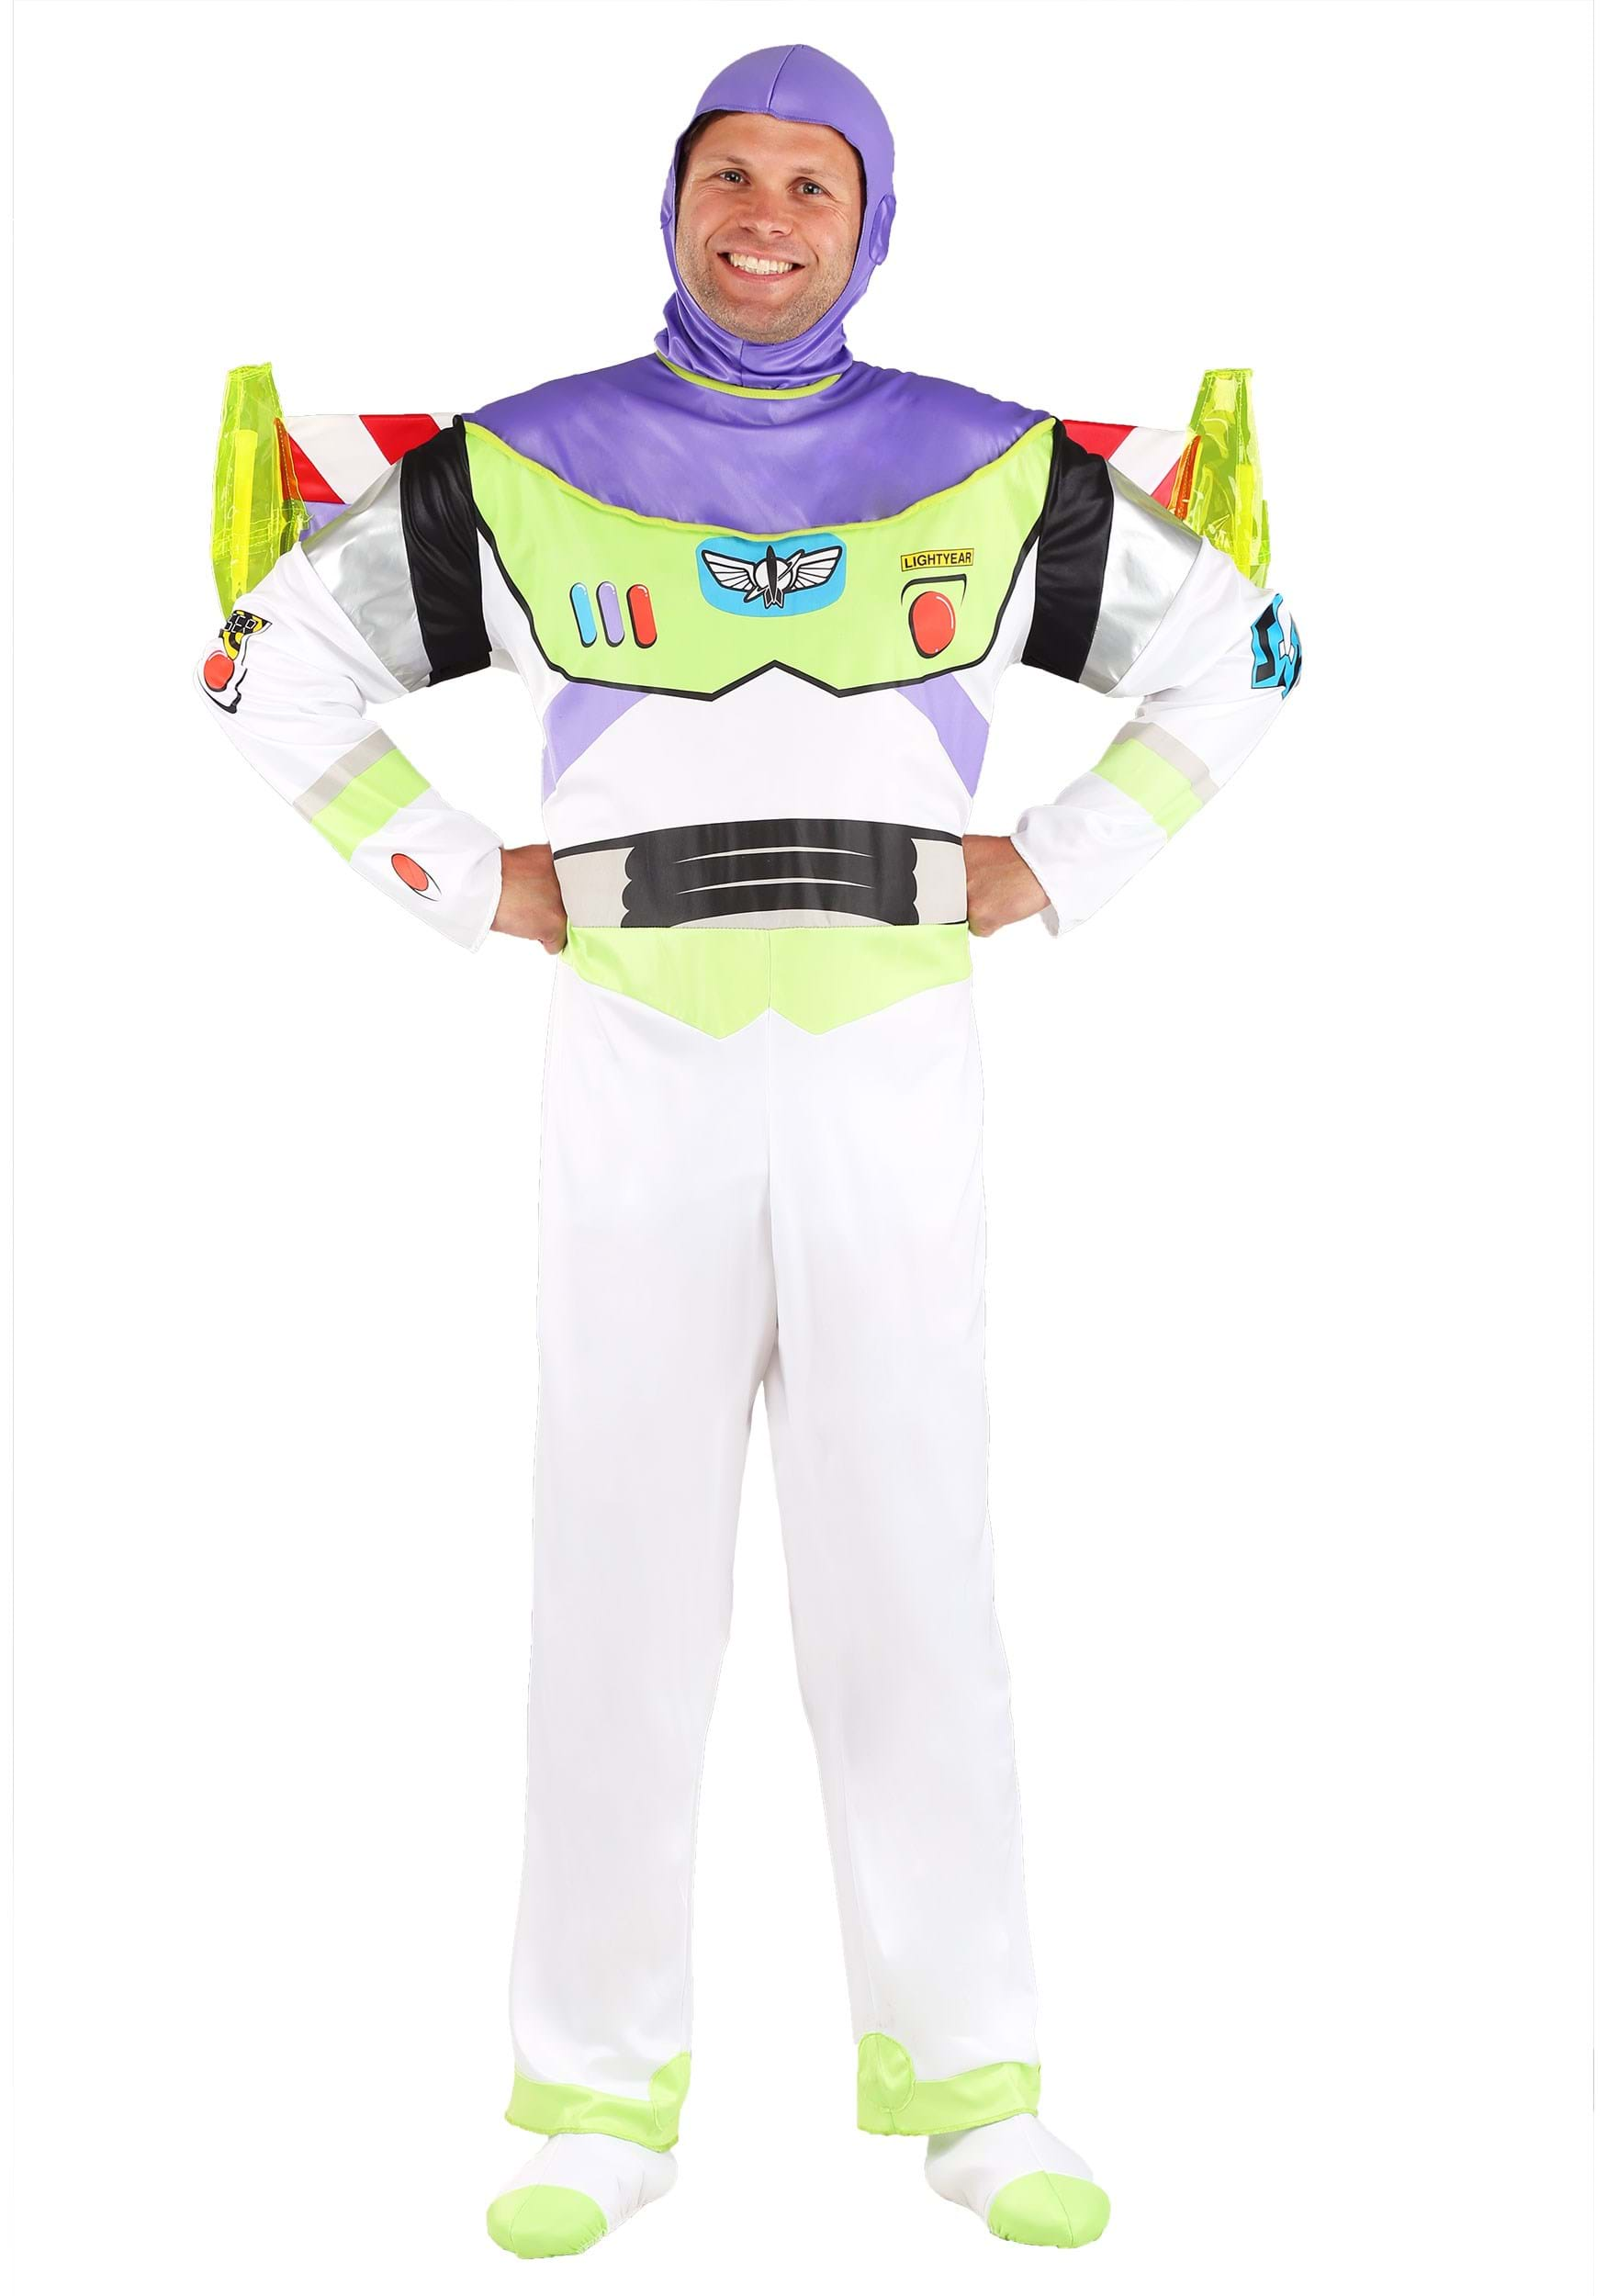 Buzz Lightyear Costume Adult 111